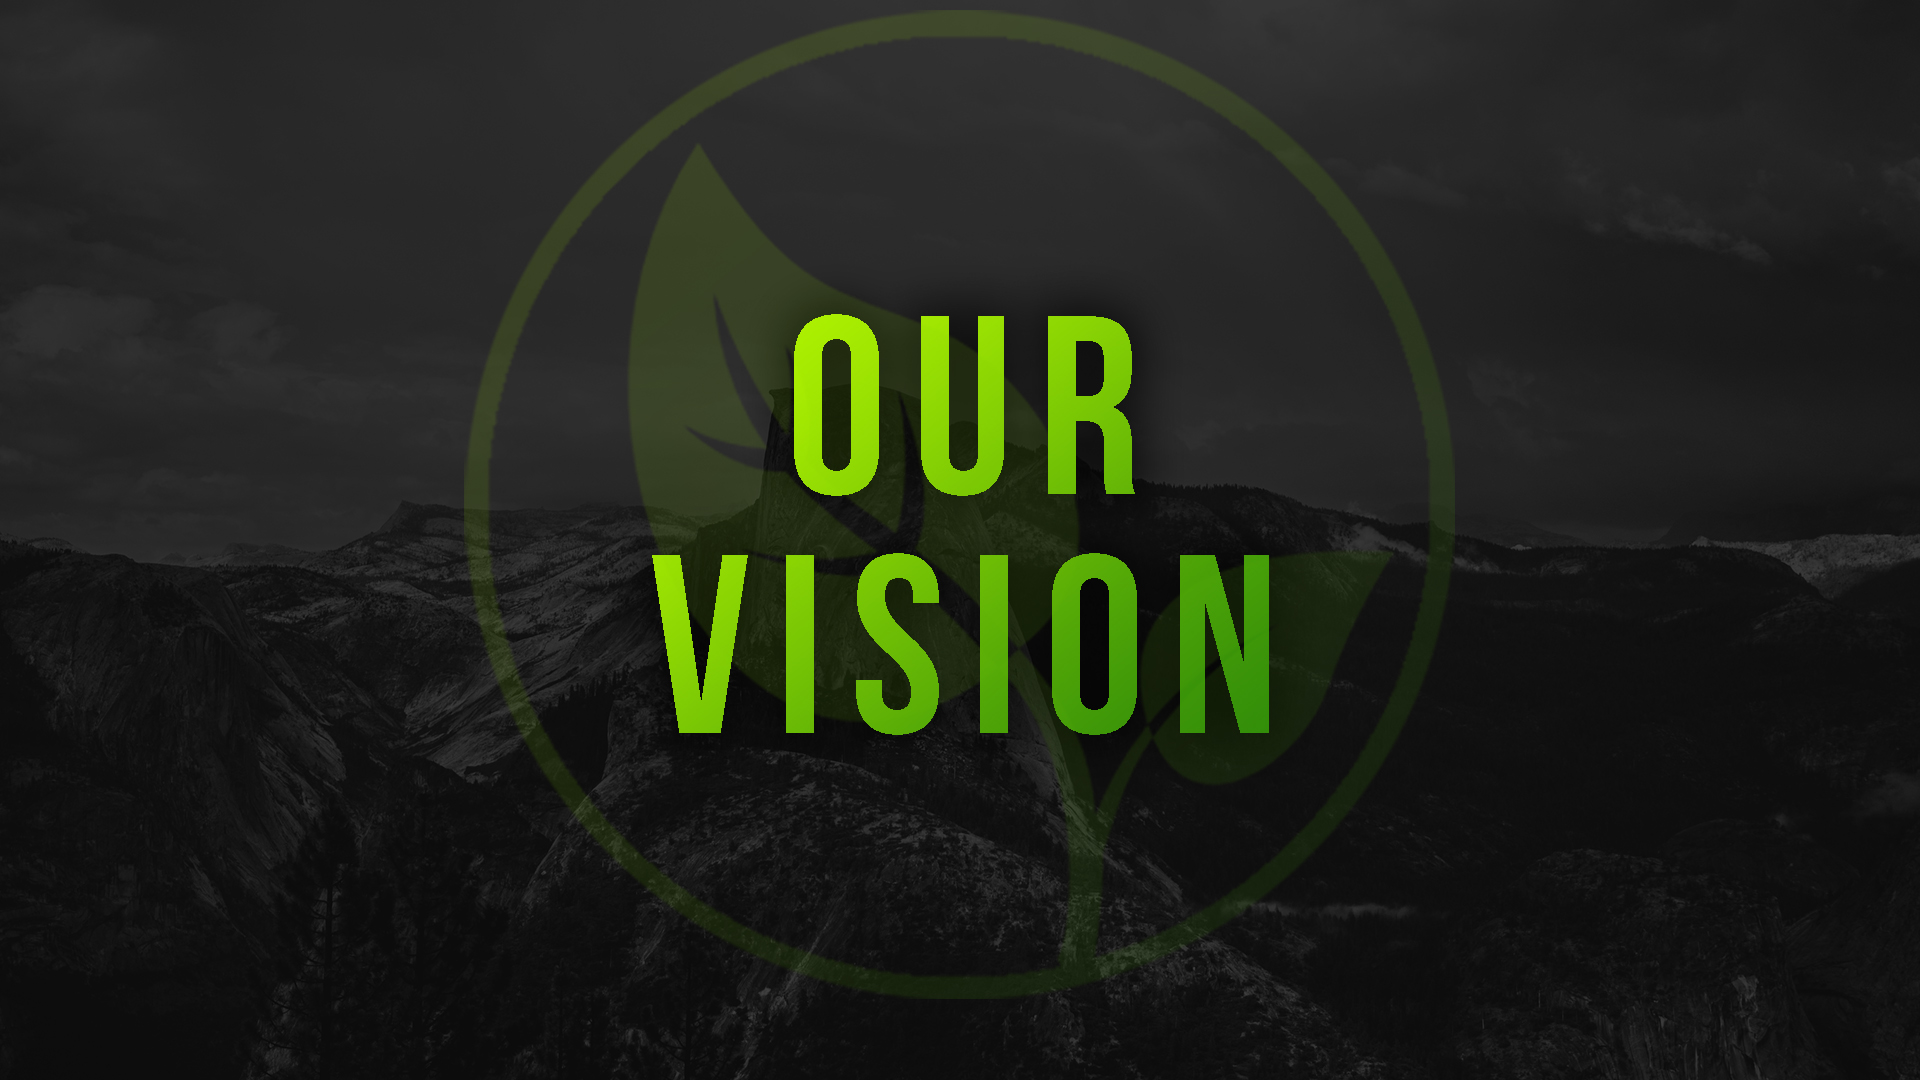 ourvision.jpg